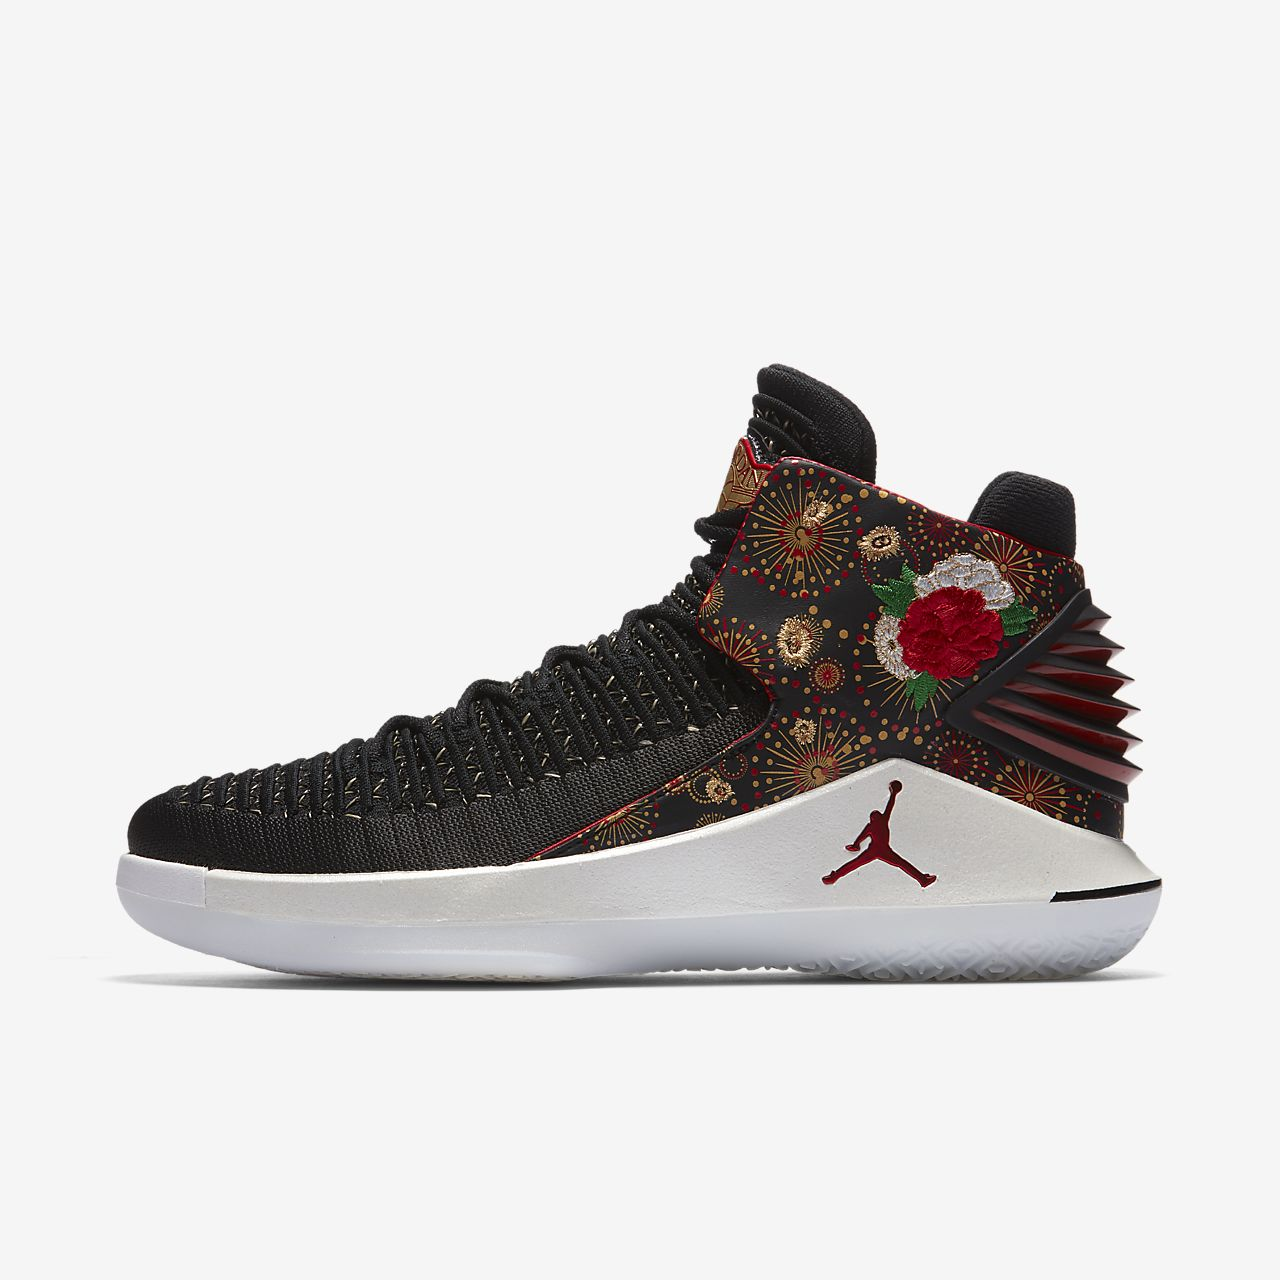 new arrival 205d0 62493 Men s Basketball Shoe. Air Jordan XXXII  Chinese New Year